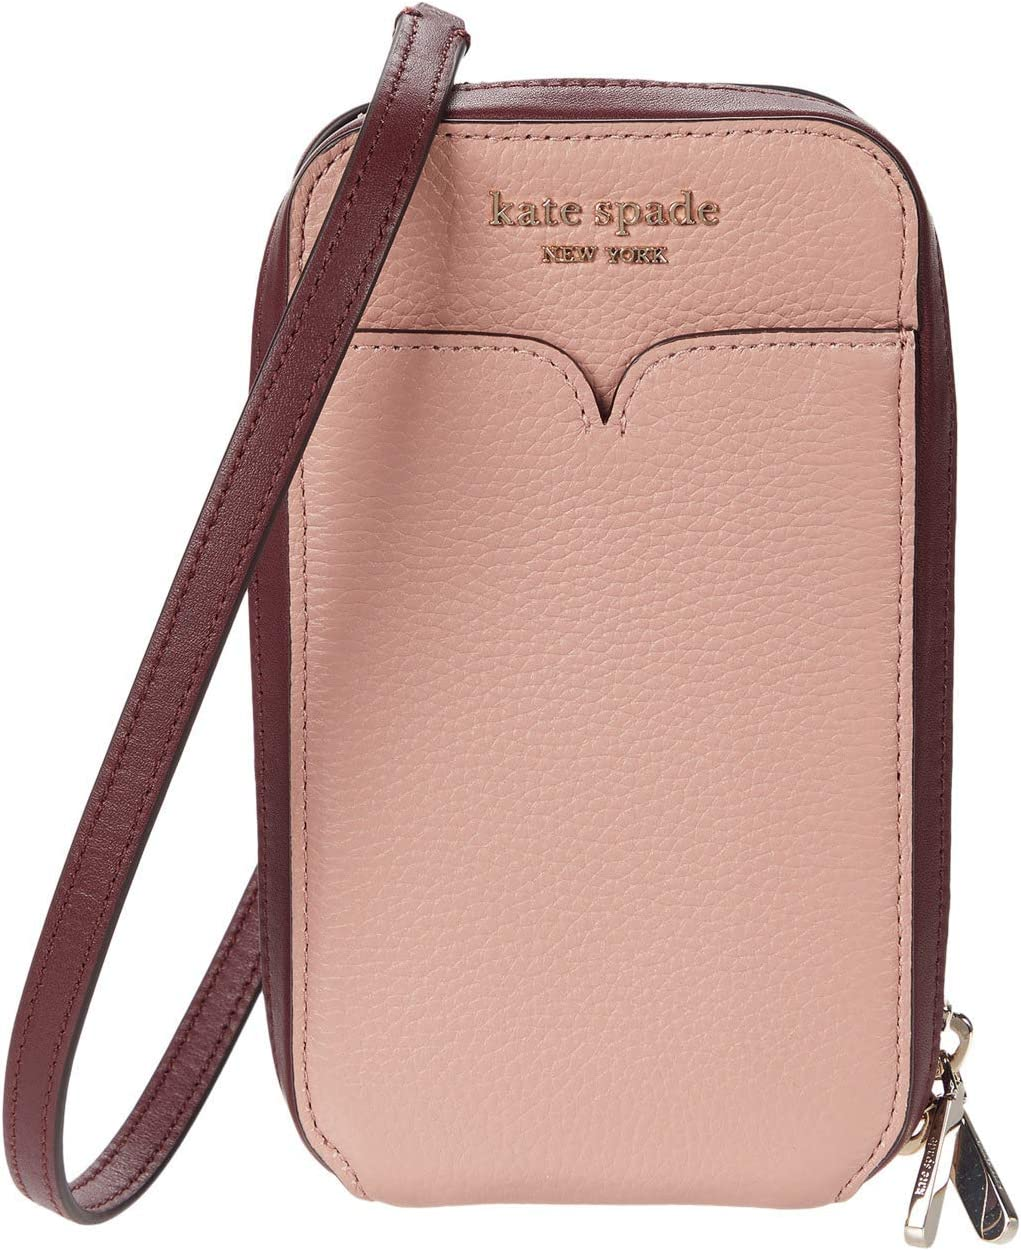 Kate Spade New York Zeezee North South Phone Free shipping anywhere in the nation iPhon Crossbody for Ranking TOP15